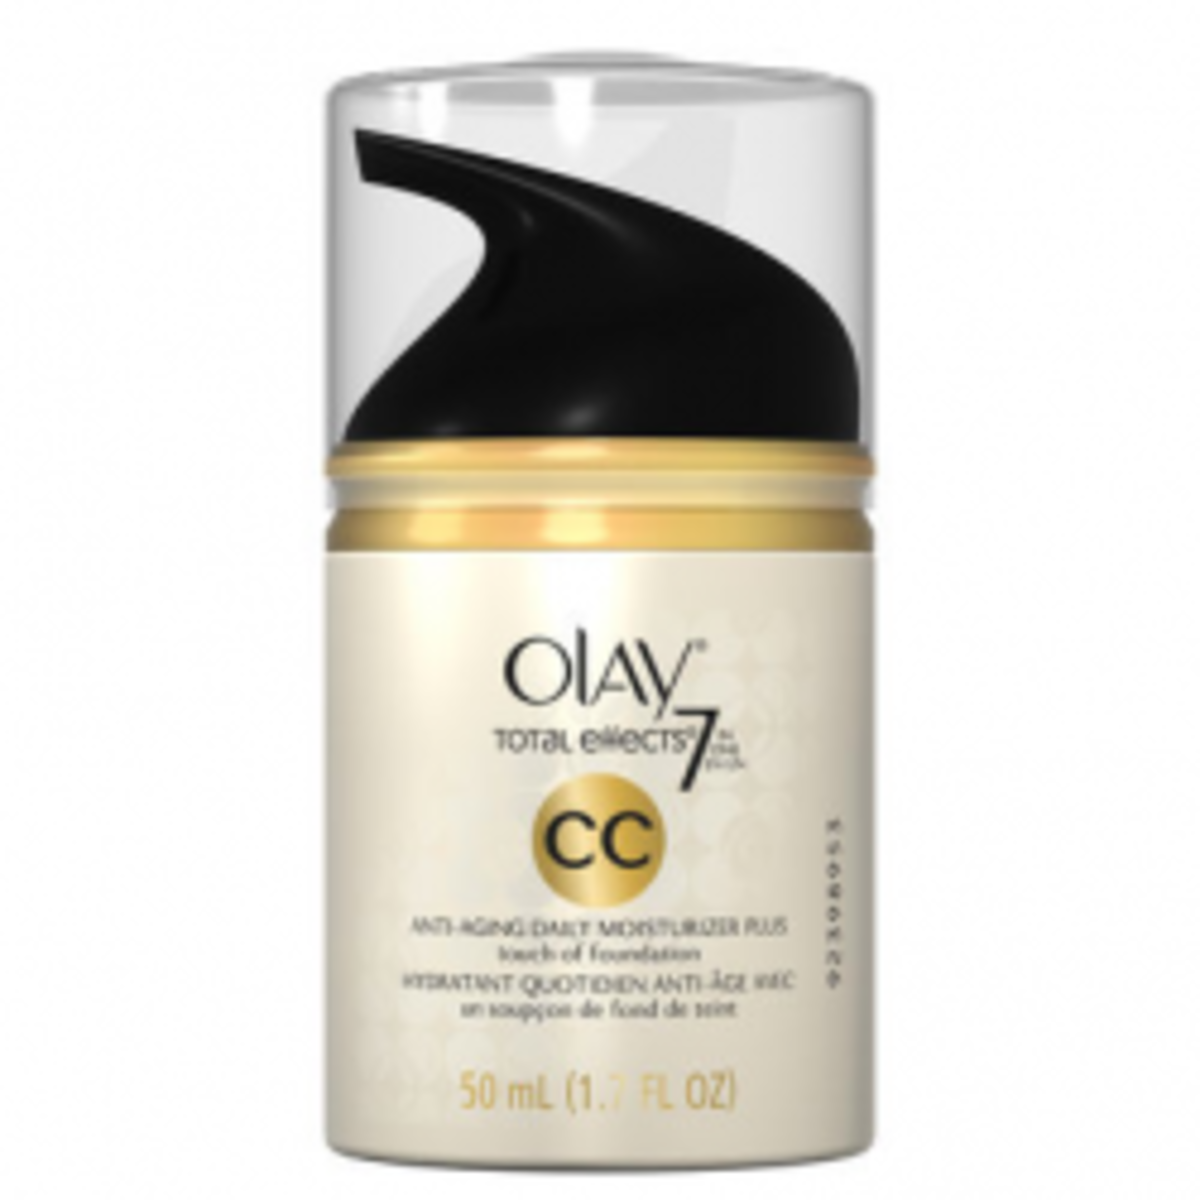 Olay CC Cream plus Moisturizer